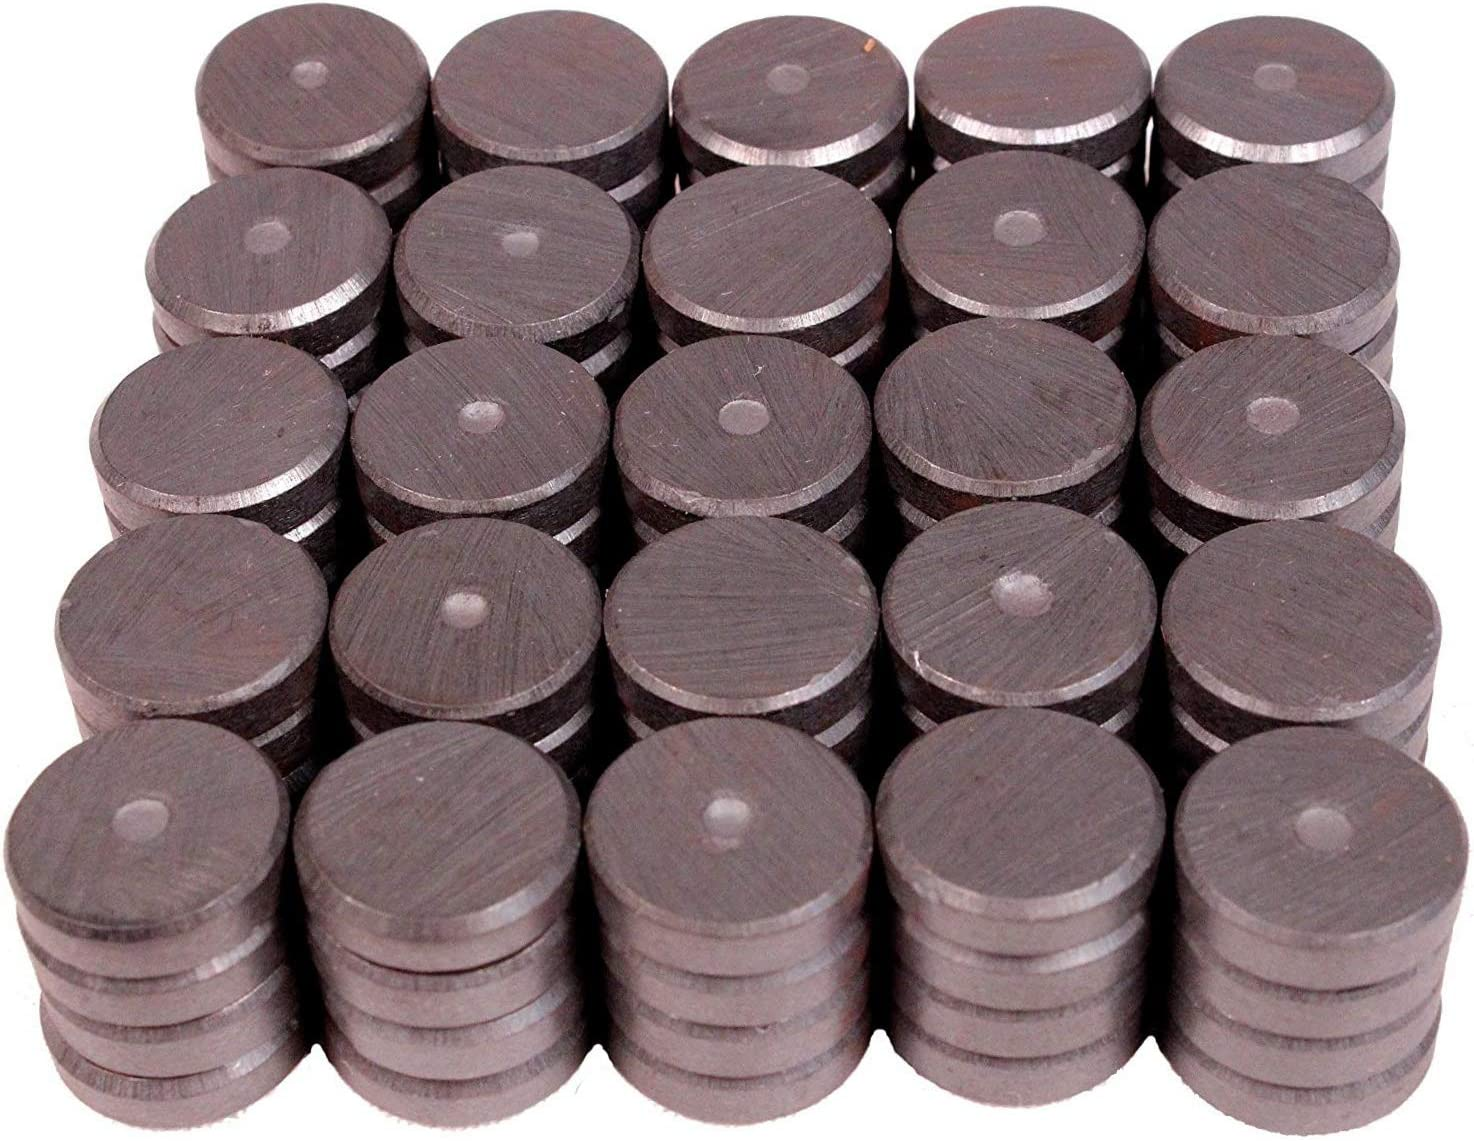 Ferrite Magnets Bulk for Crafts Science /& Hobbies Creative Hobbies Industrial Ceramic Circle Magnets 11//16 Inch Flat 100 pcs//Box! Refrigerator or Whiteboard 3//16 Thick 18mm Round Disc